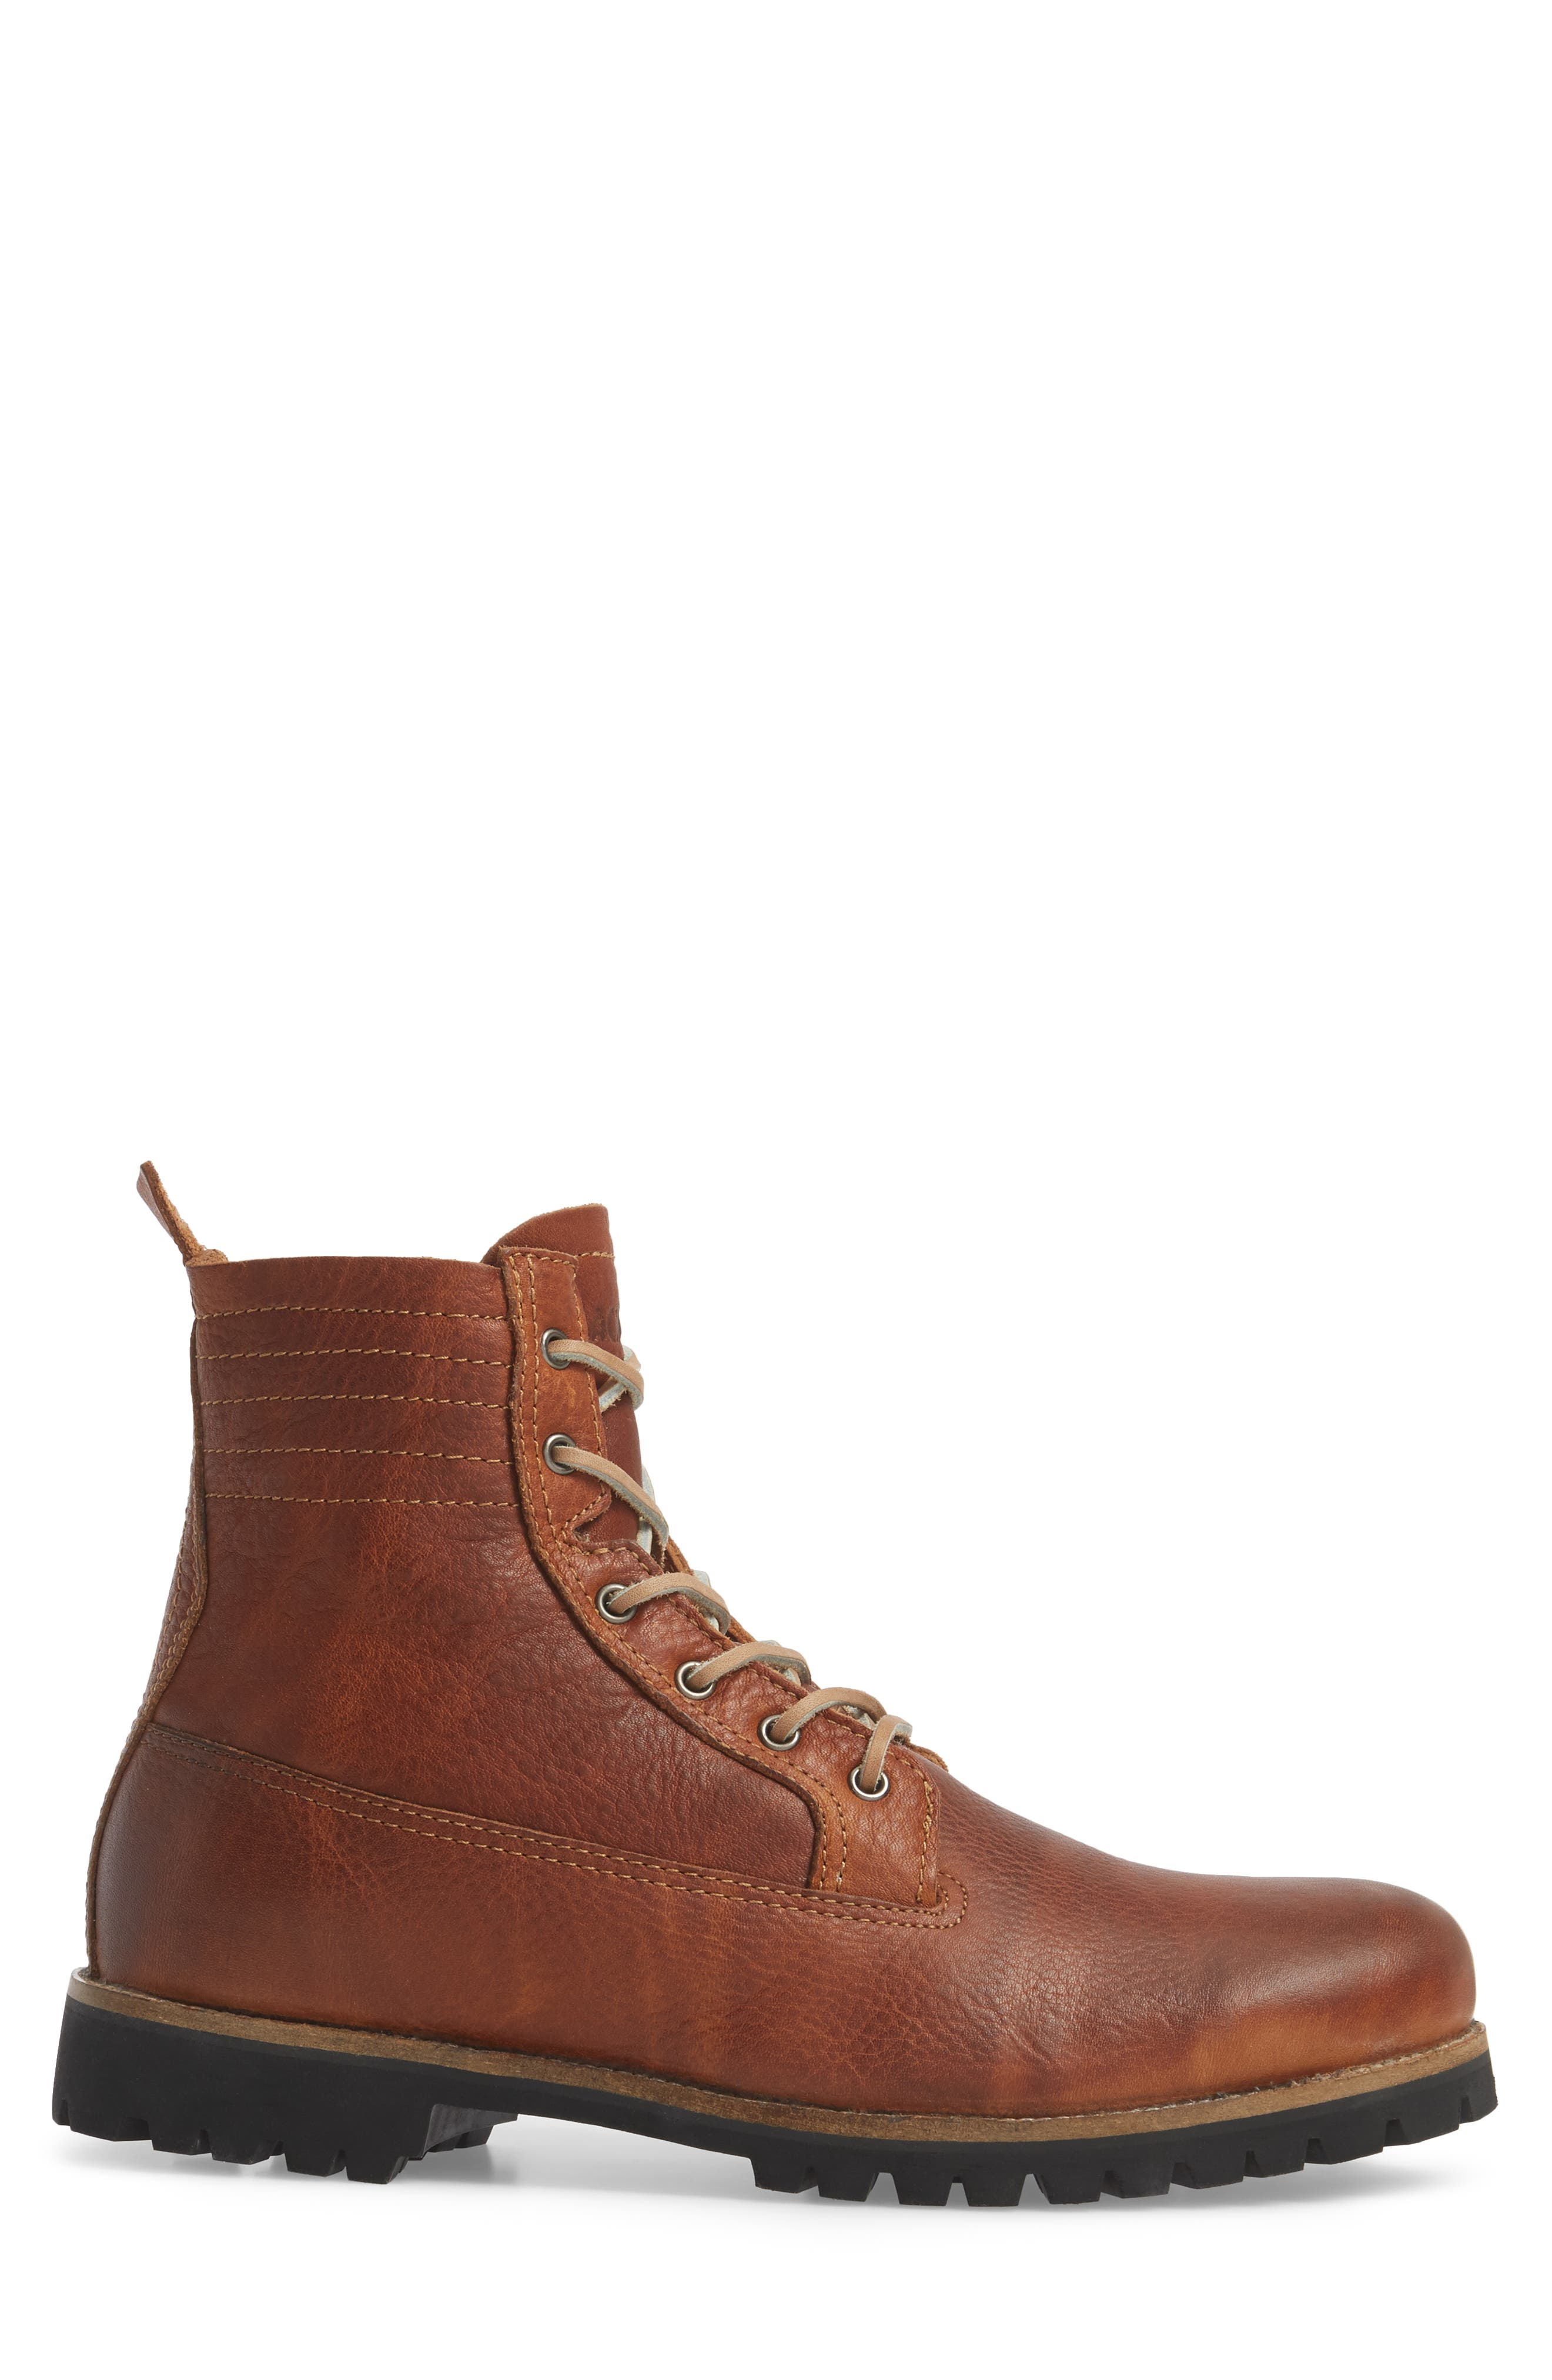 IM 12 Plain Toe Boot with Genuine Shearling,                             Alternate thumbnail 3, color,                             Cuoio Leather